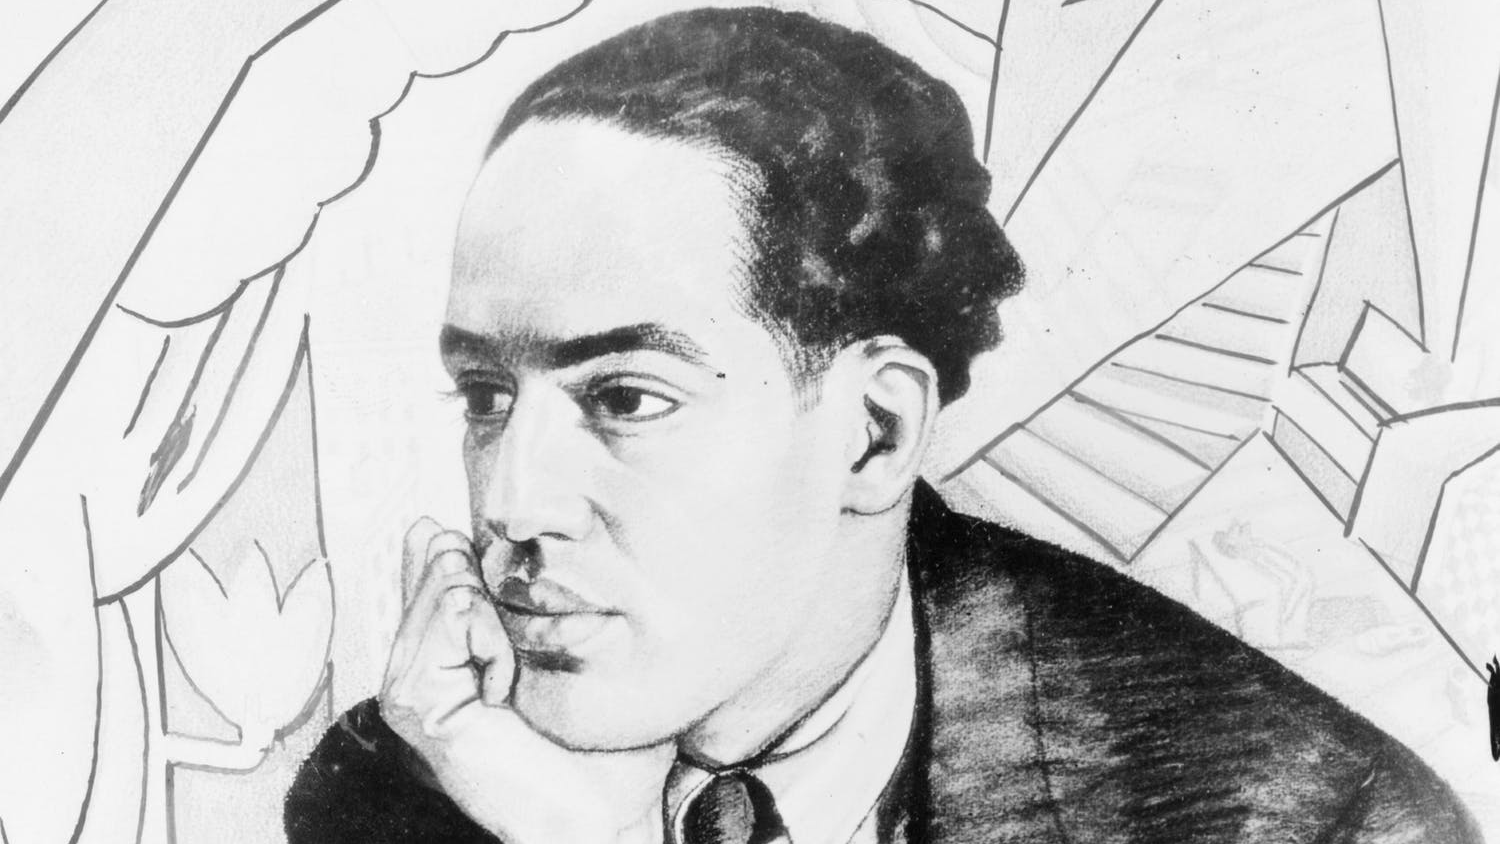 sketch of langston hughes